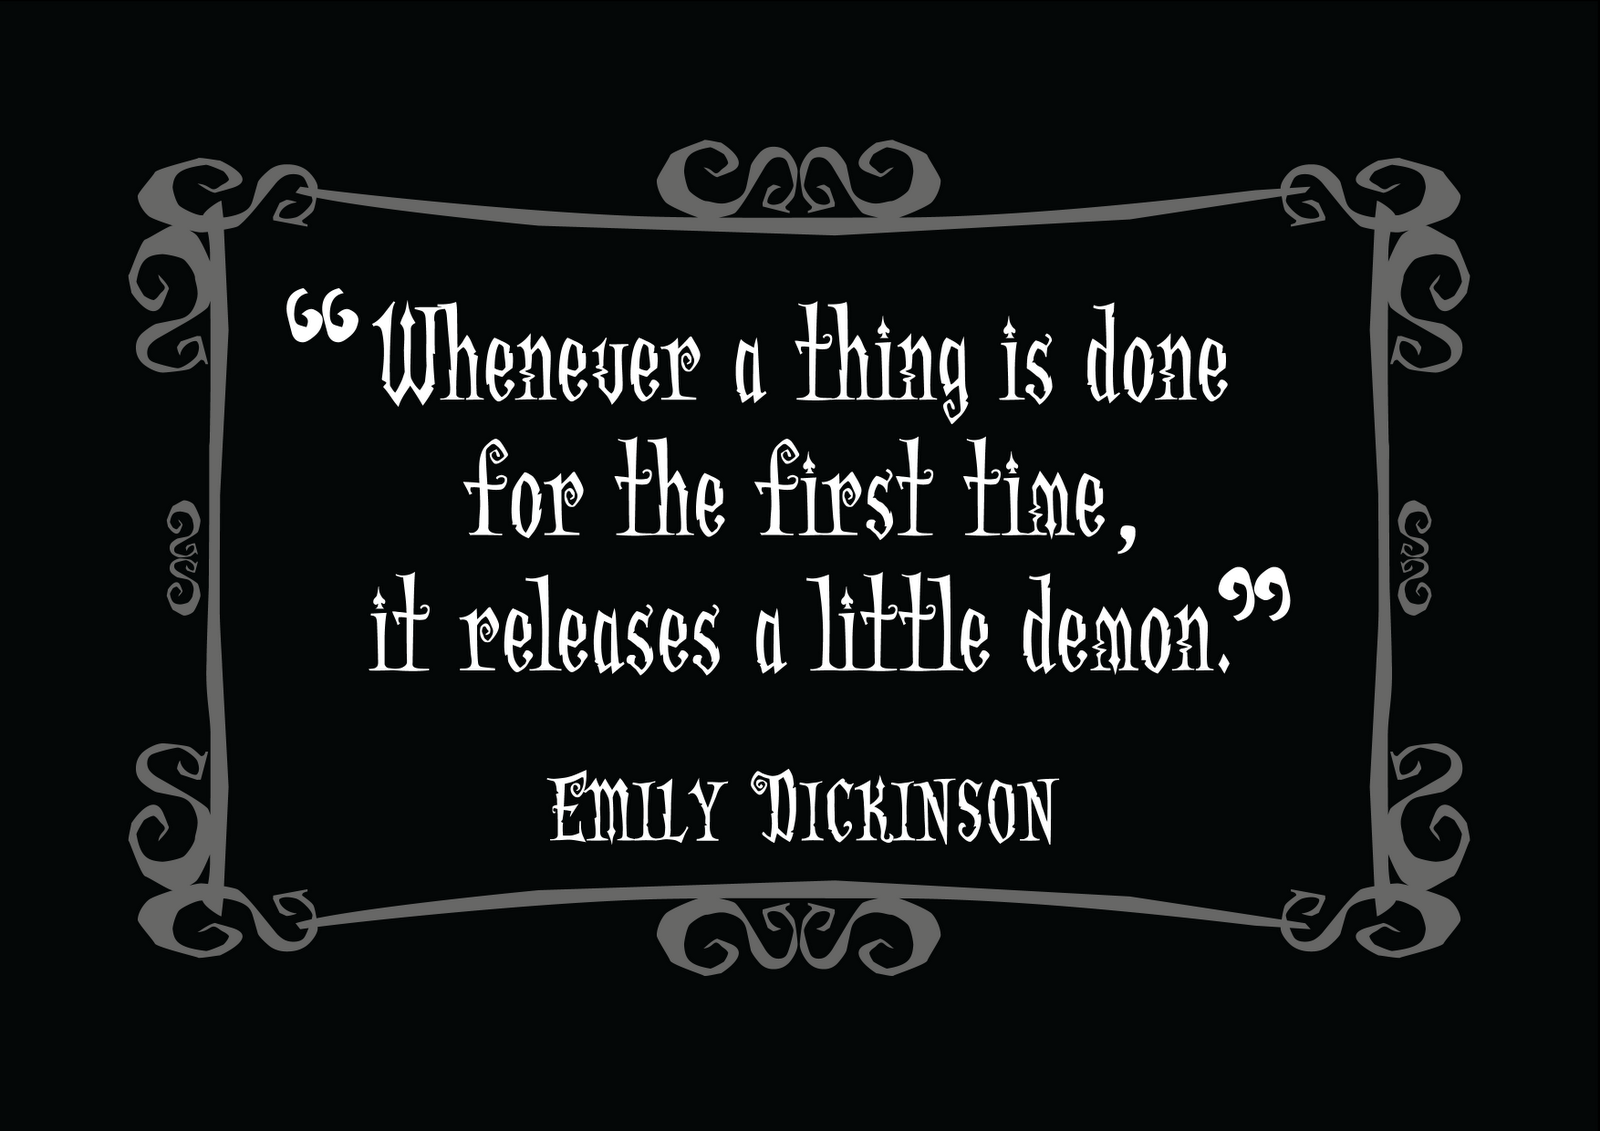 emily dickinson death quotes  quotesgram